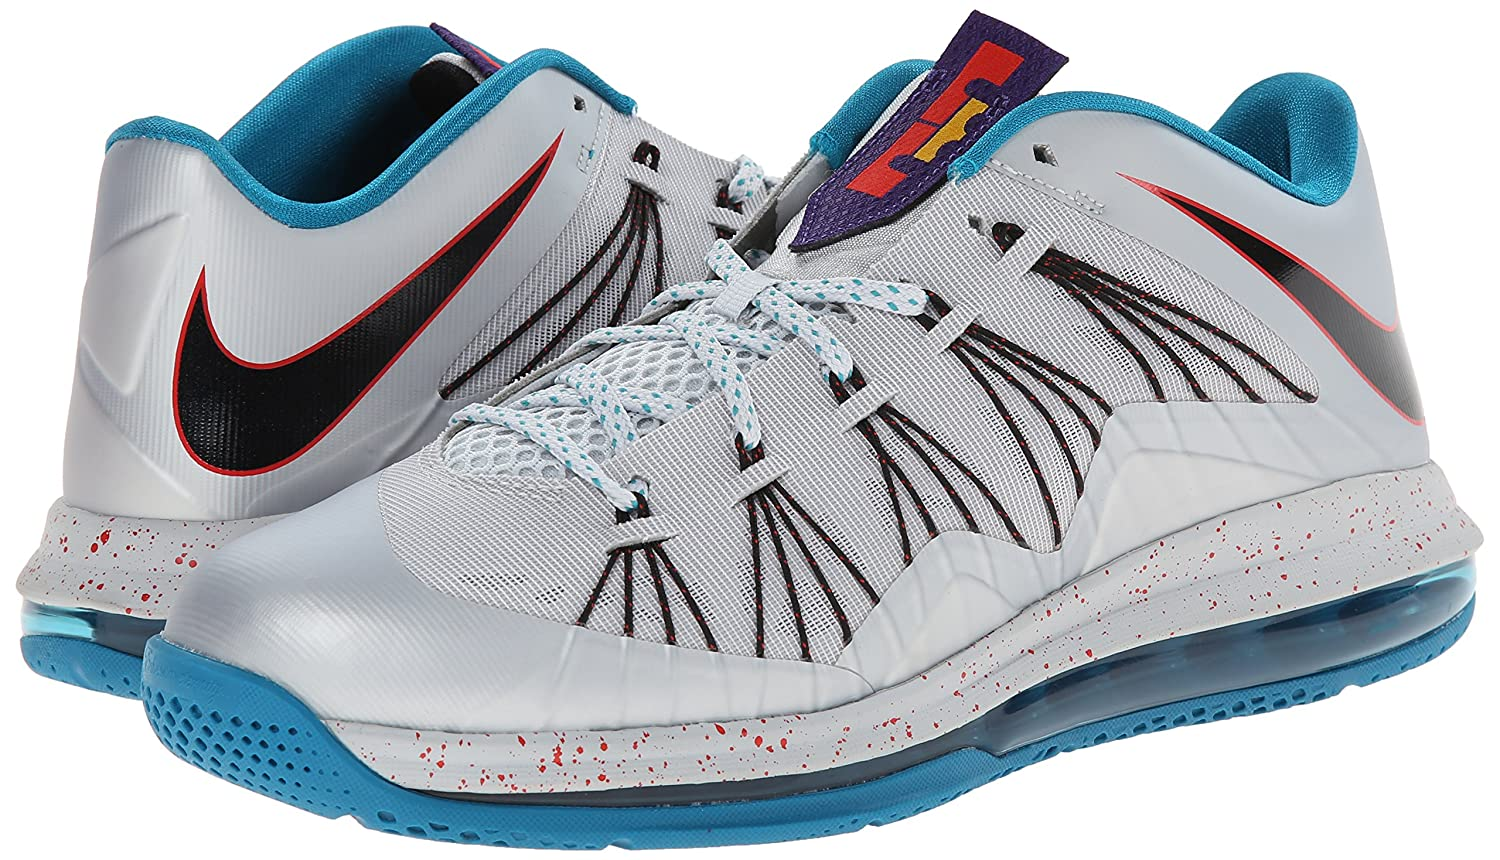 NIKE AIR MAX X Lebron X MAX Low - 579765-601 816149